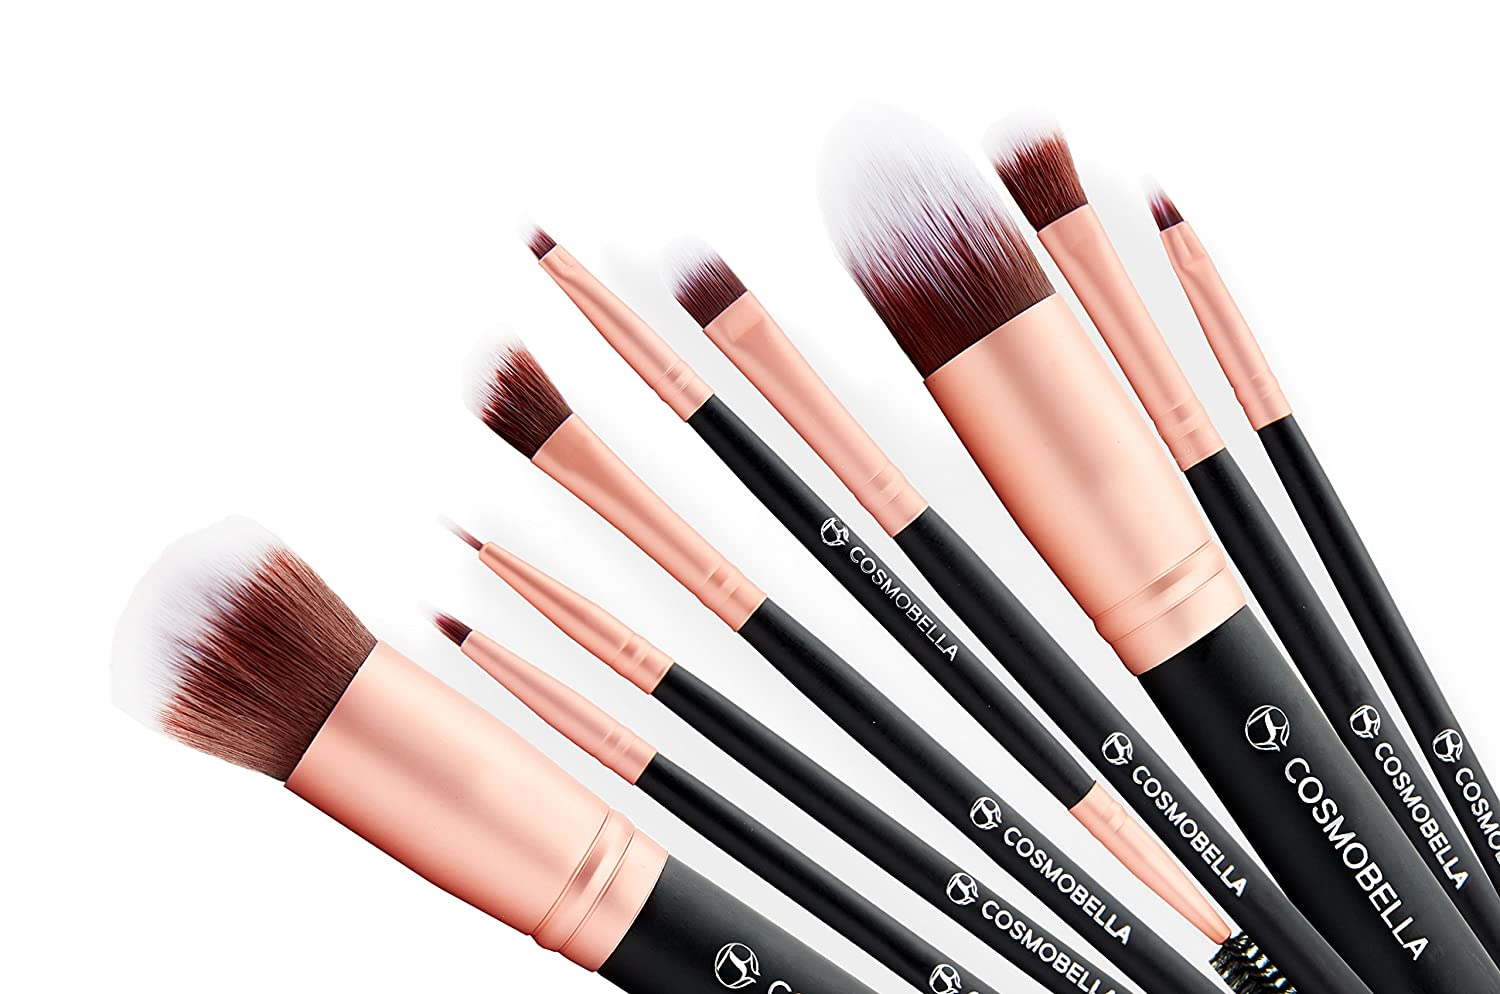 Cosmobella Premium Synthetic Kabuki Makeup Brush Set | Includes Foundation Brushes, Concealers, Eye Shadows, Eye Liner | Ultra Soft, Silky, Firm, Non-Shedding | Luxury Black & Rose Gold (14Pcs)